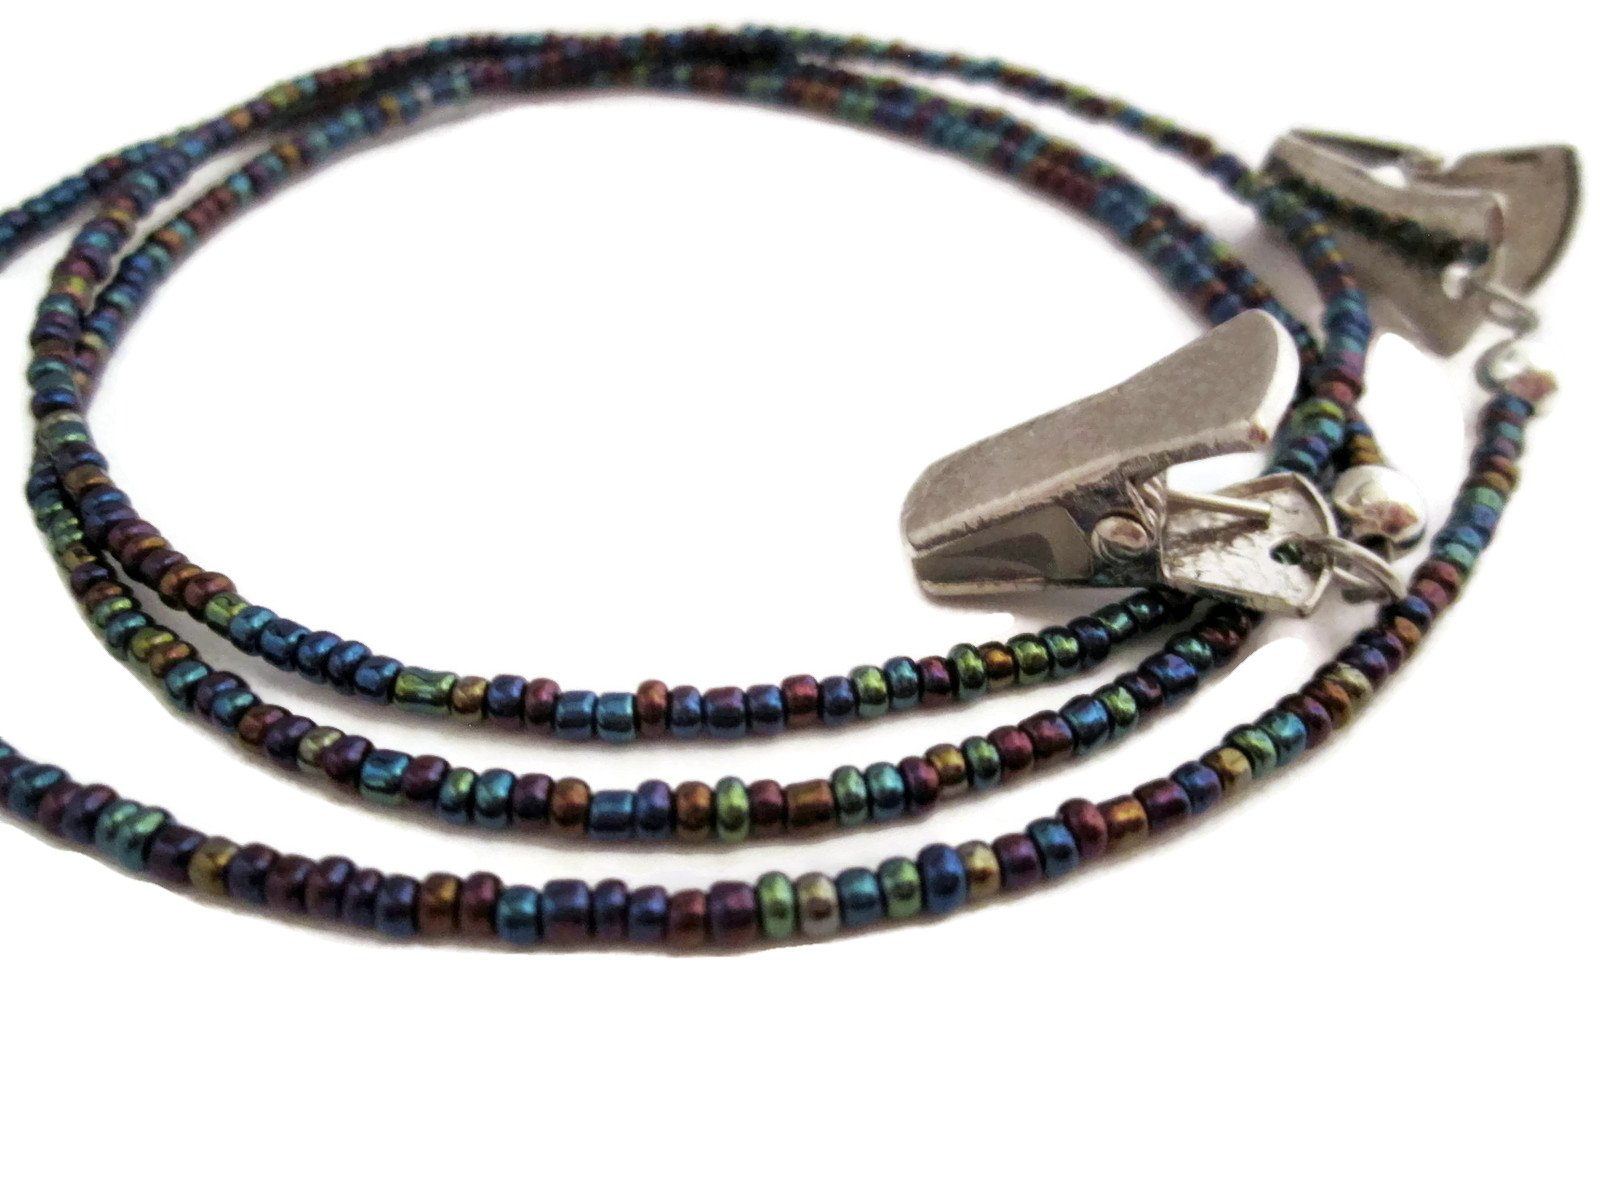 ATLanyards Oil Slick Seed Bead Clip Eyeglass Holder, Beaded Glasses Holder with Silver Clips